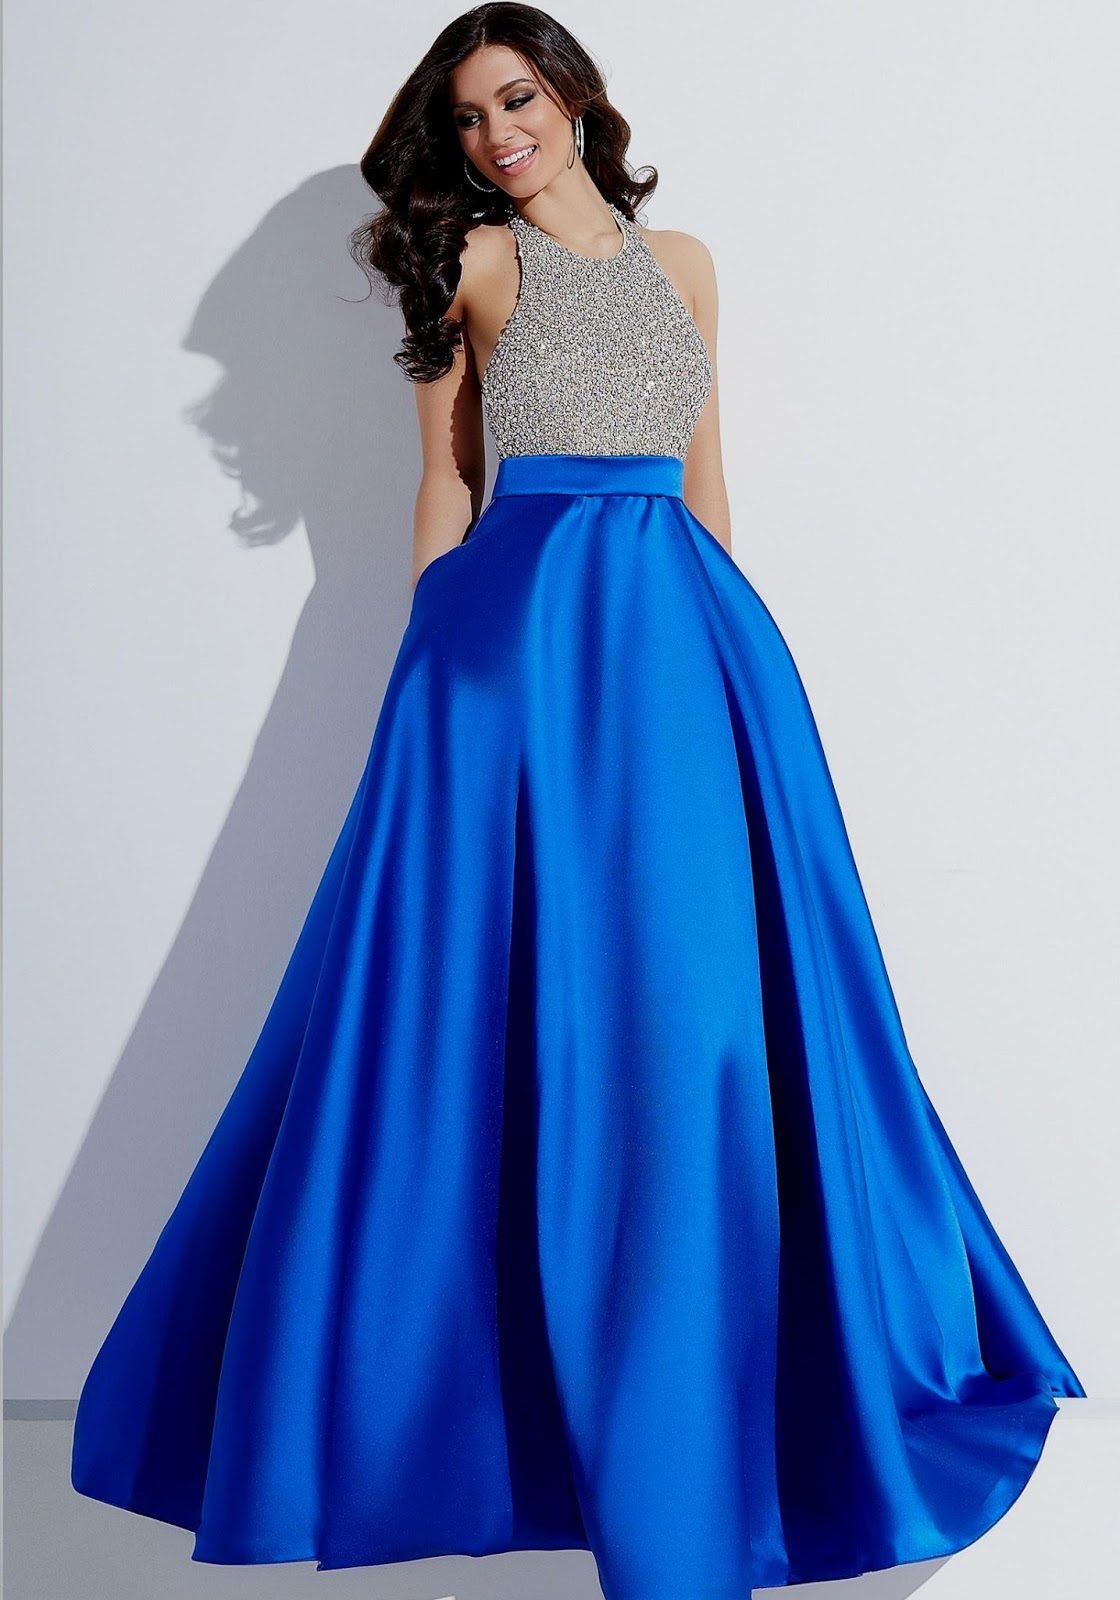 Bridesmaid Dresses In Blue And Silver - Wedding Dresses Asian